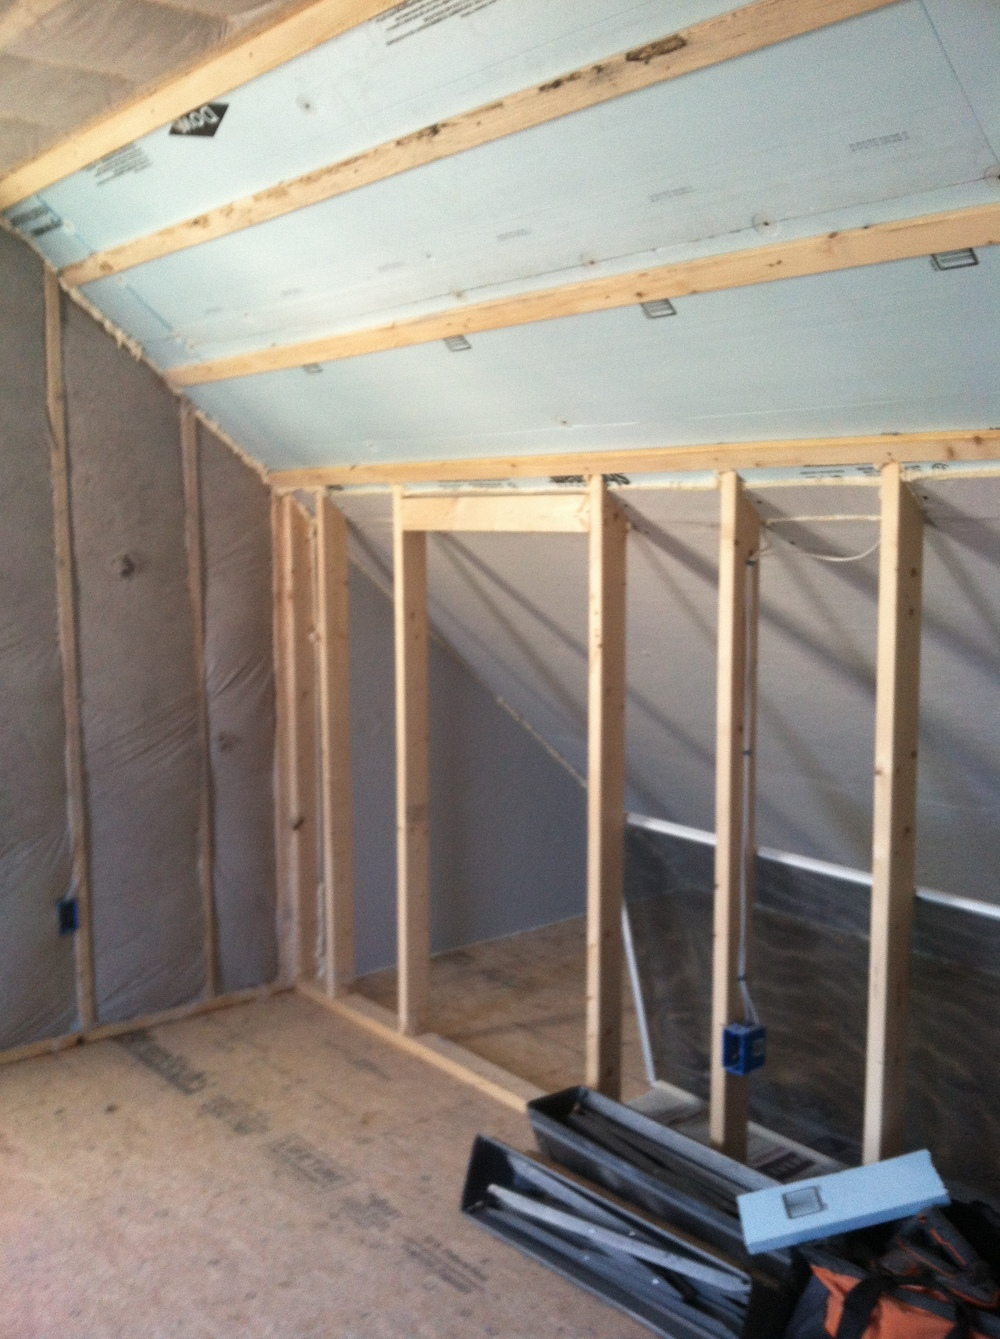 Attic Finishing - Prep for Drywall - Super Insulated